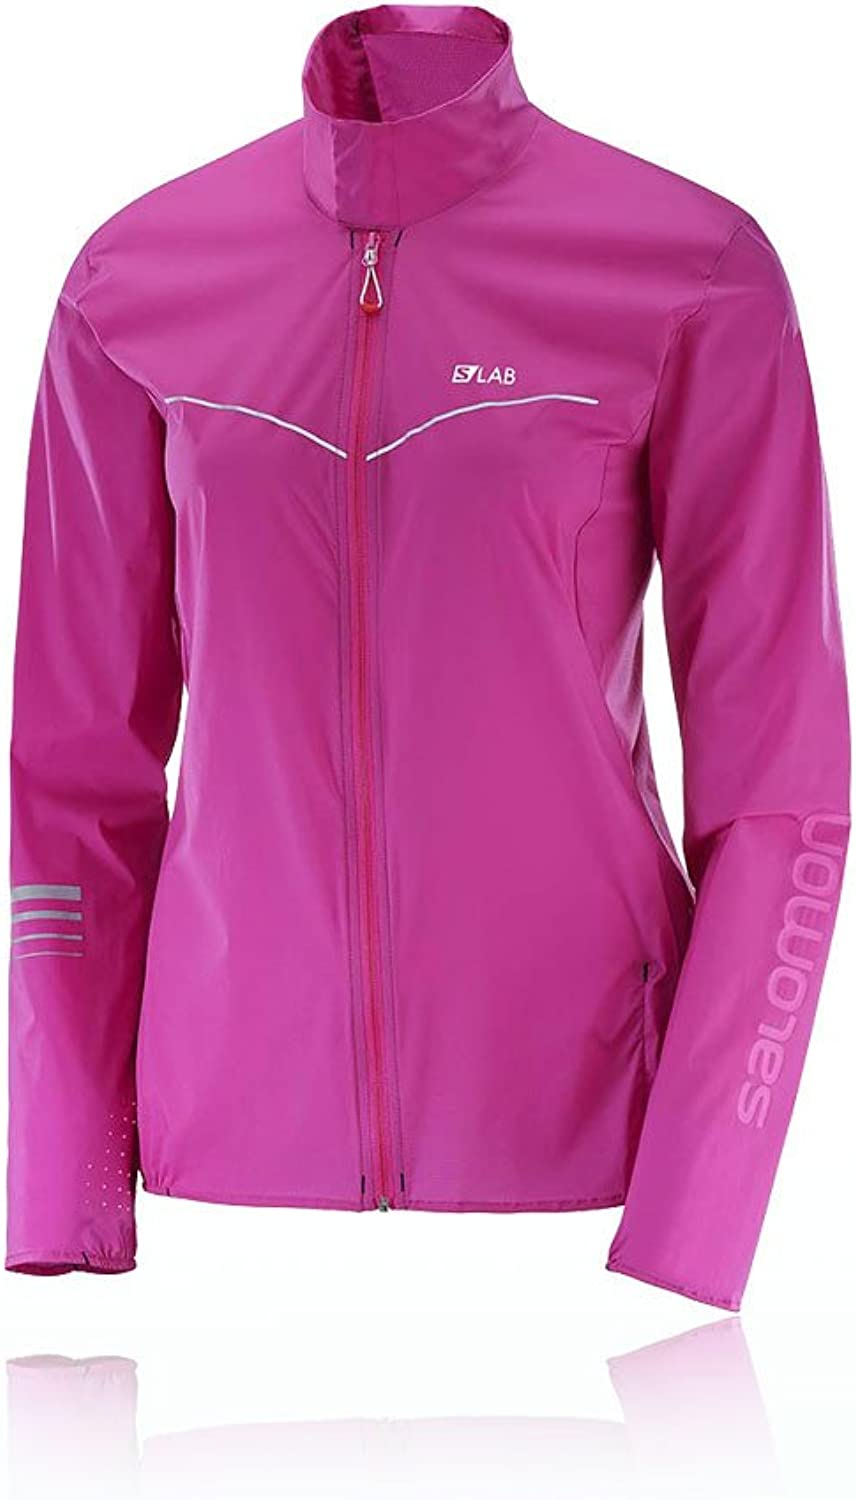 Salomon Women's SLab Lightweight Jacket